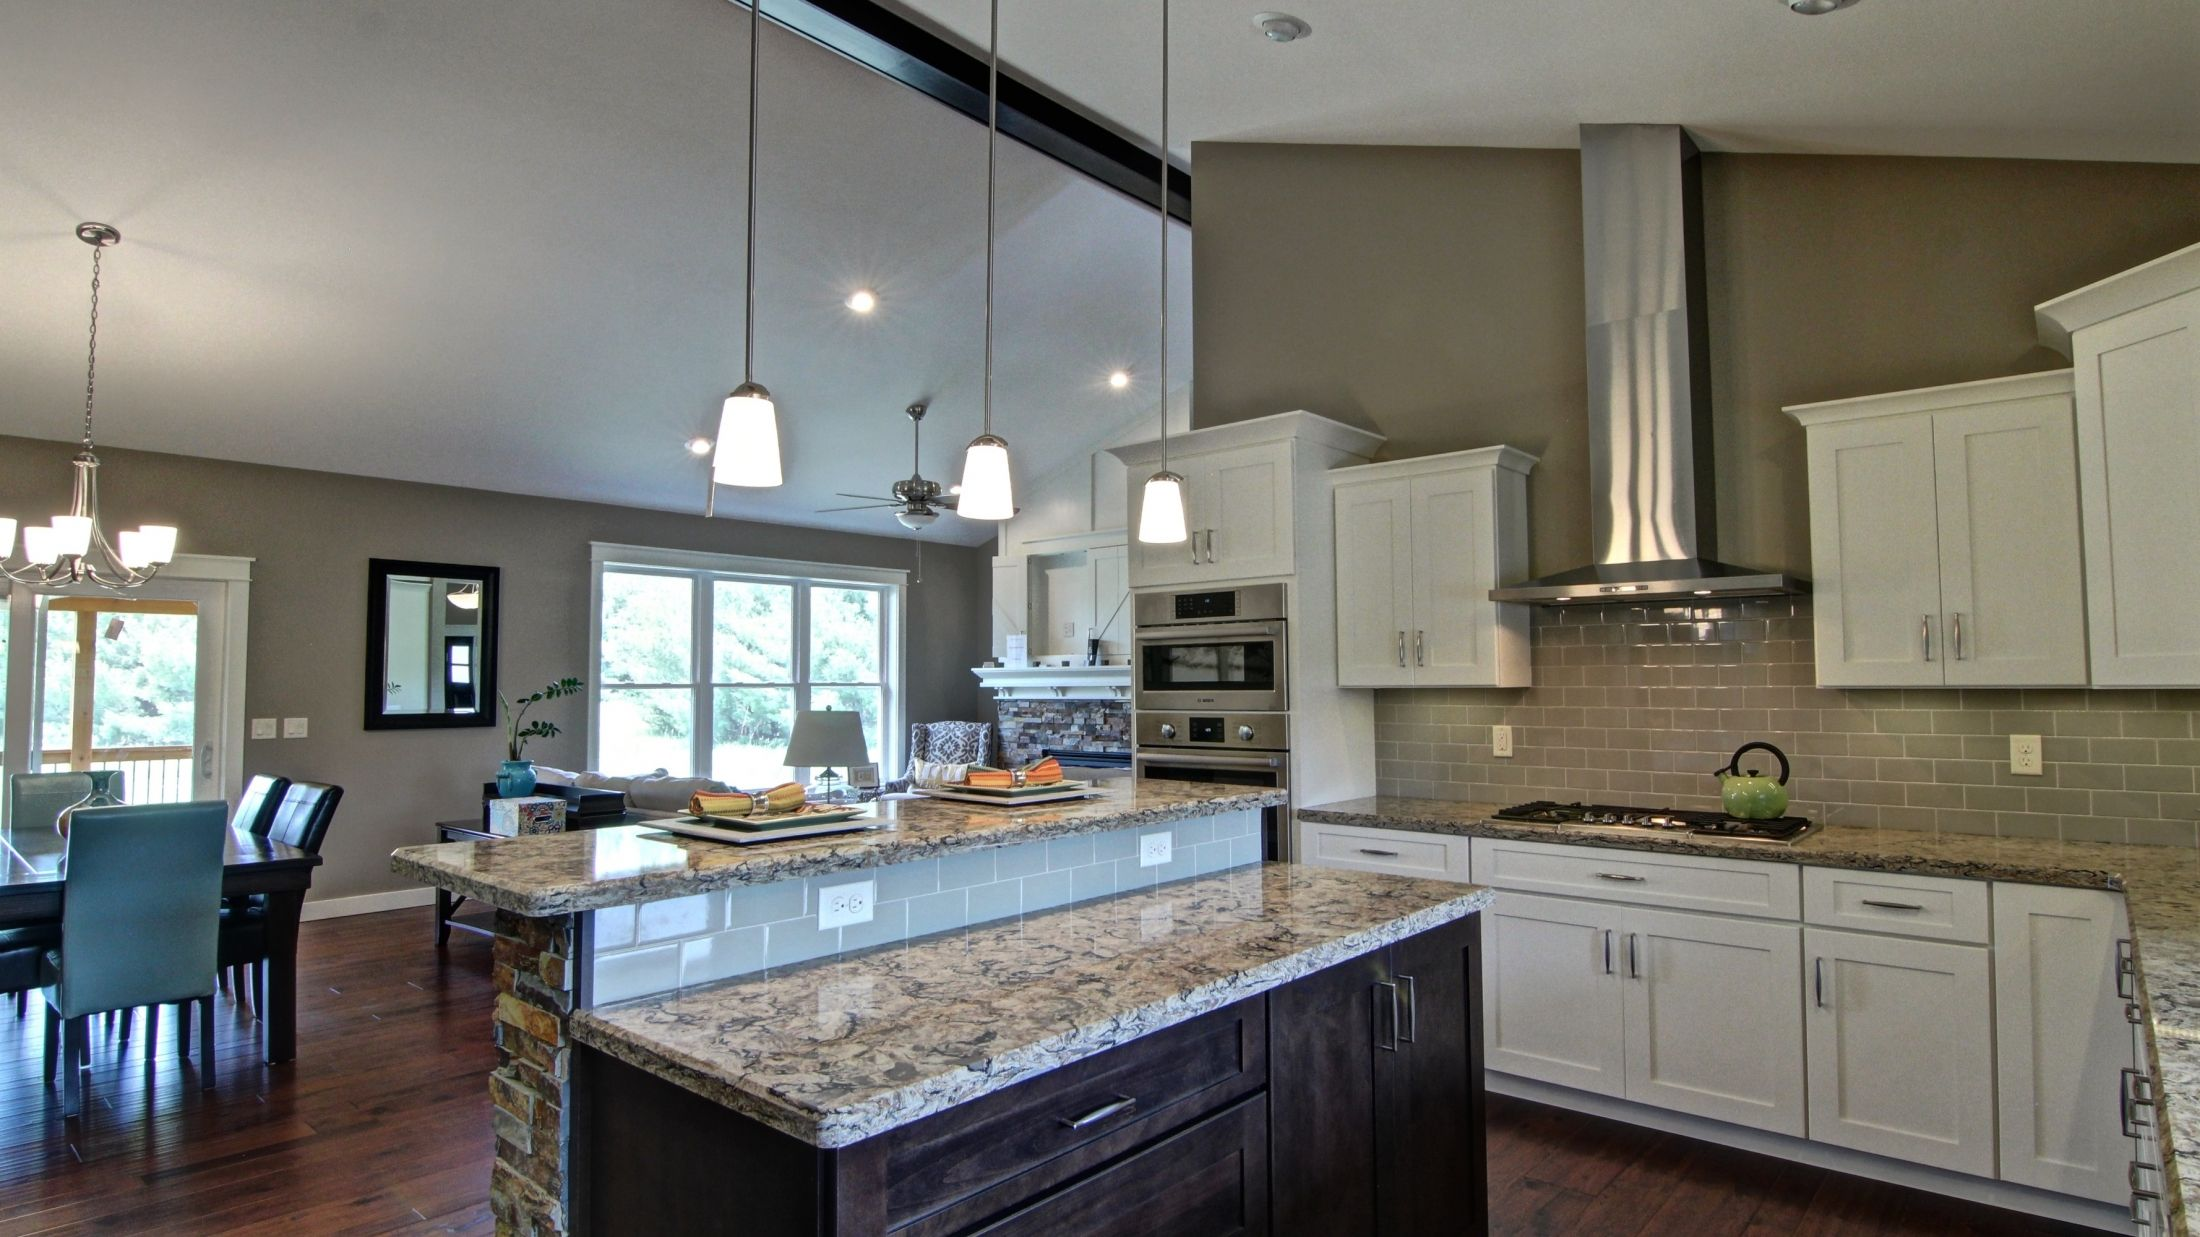 C&E Wurzer Builders can bring you your dream #KitchenDesign #CustomHomes #CustomKitchens